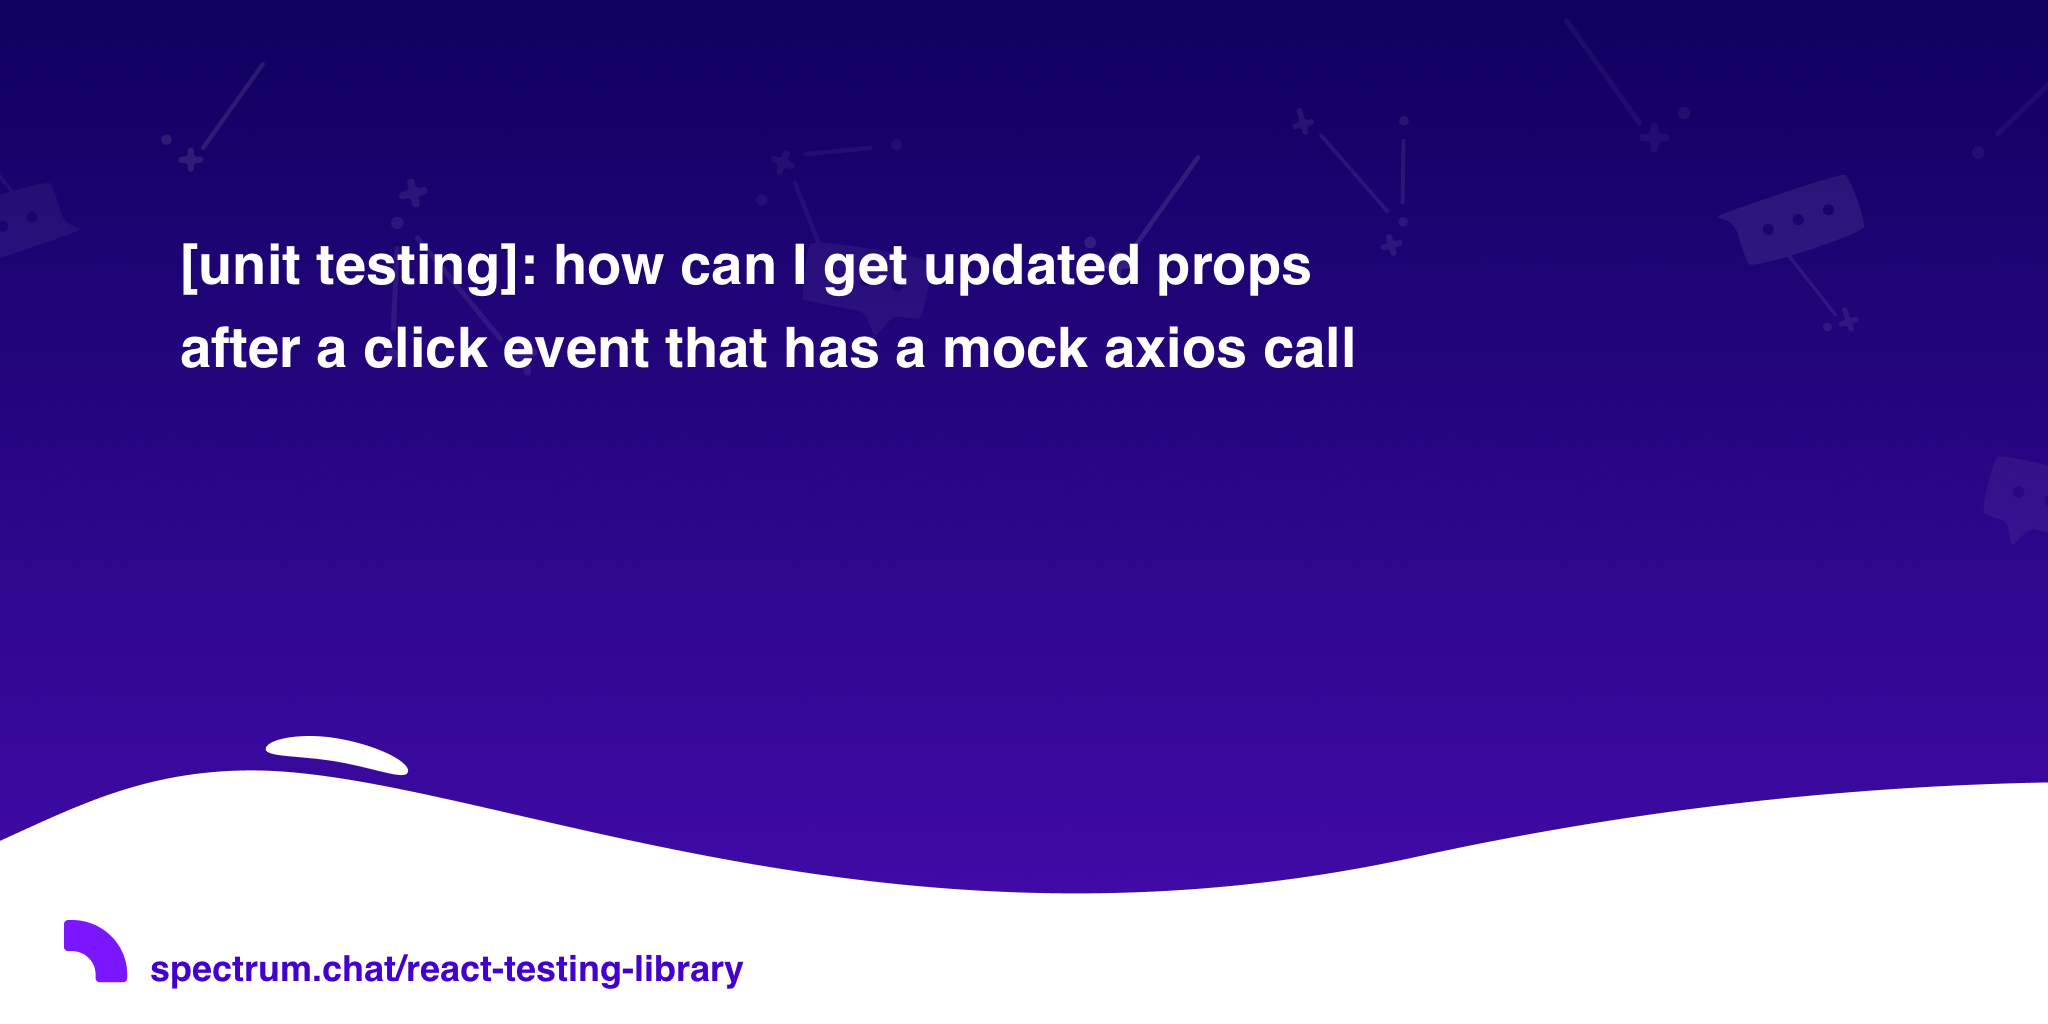 unit testing]: how can I get updated props after a click